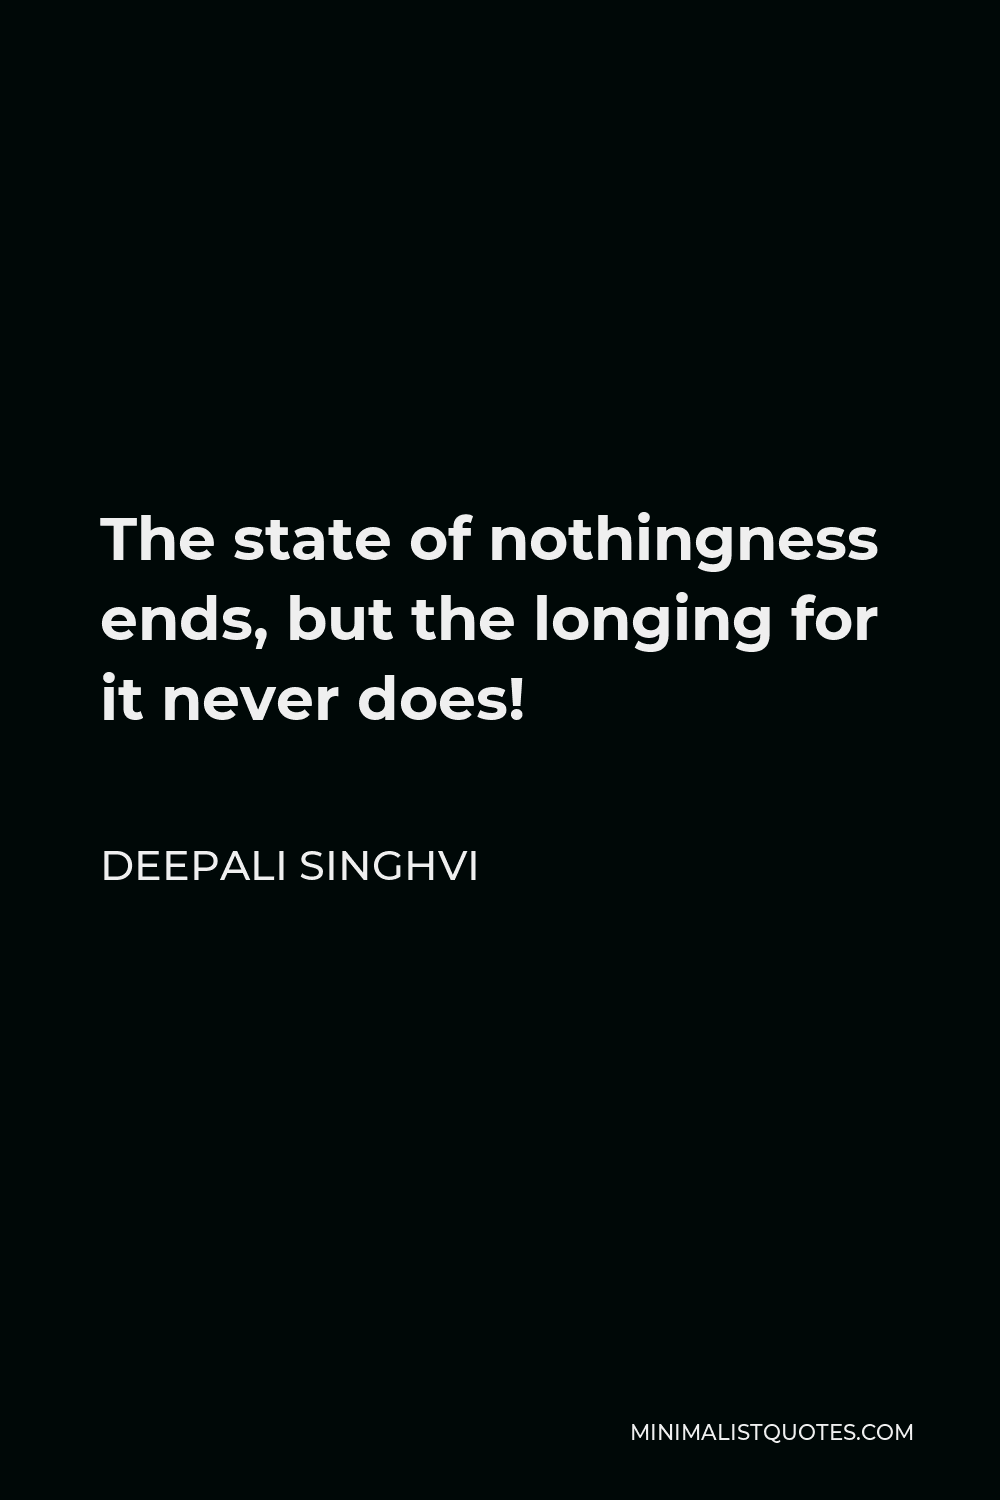 Deepali Singhvi Quote - The state of nothingness ends, but the longing for it never does!